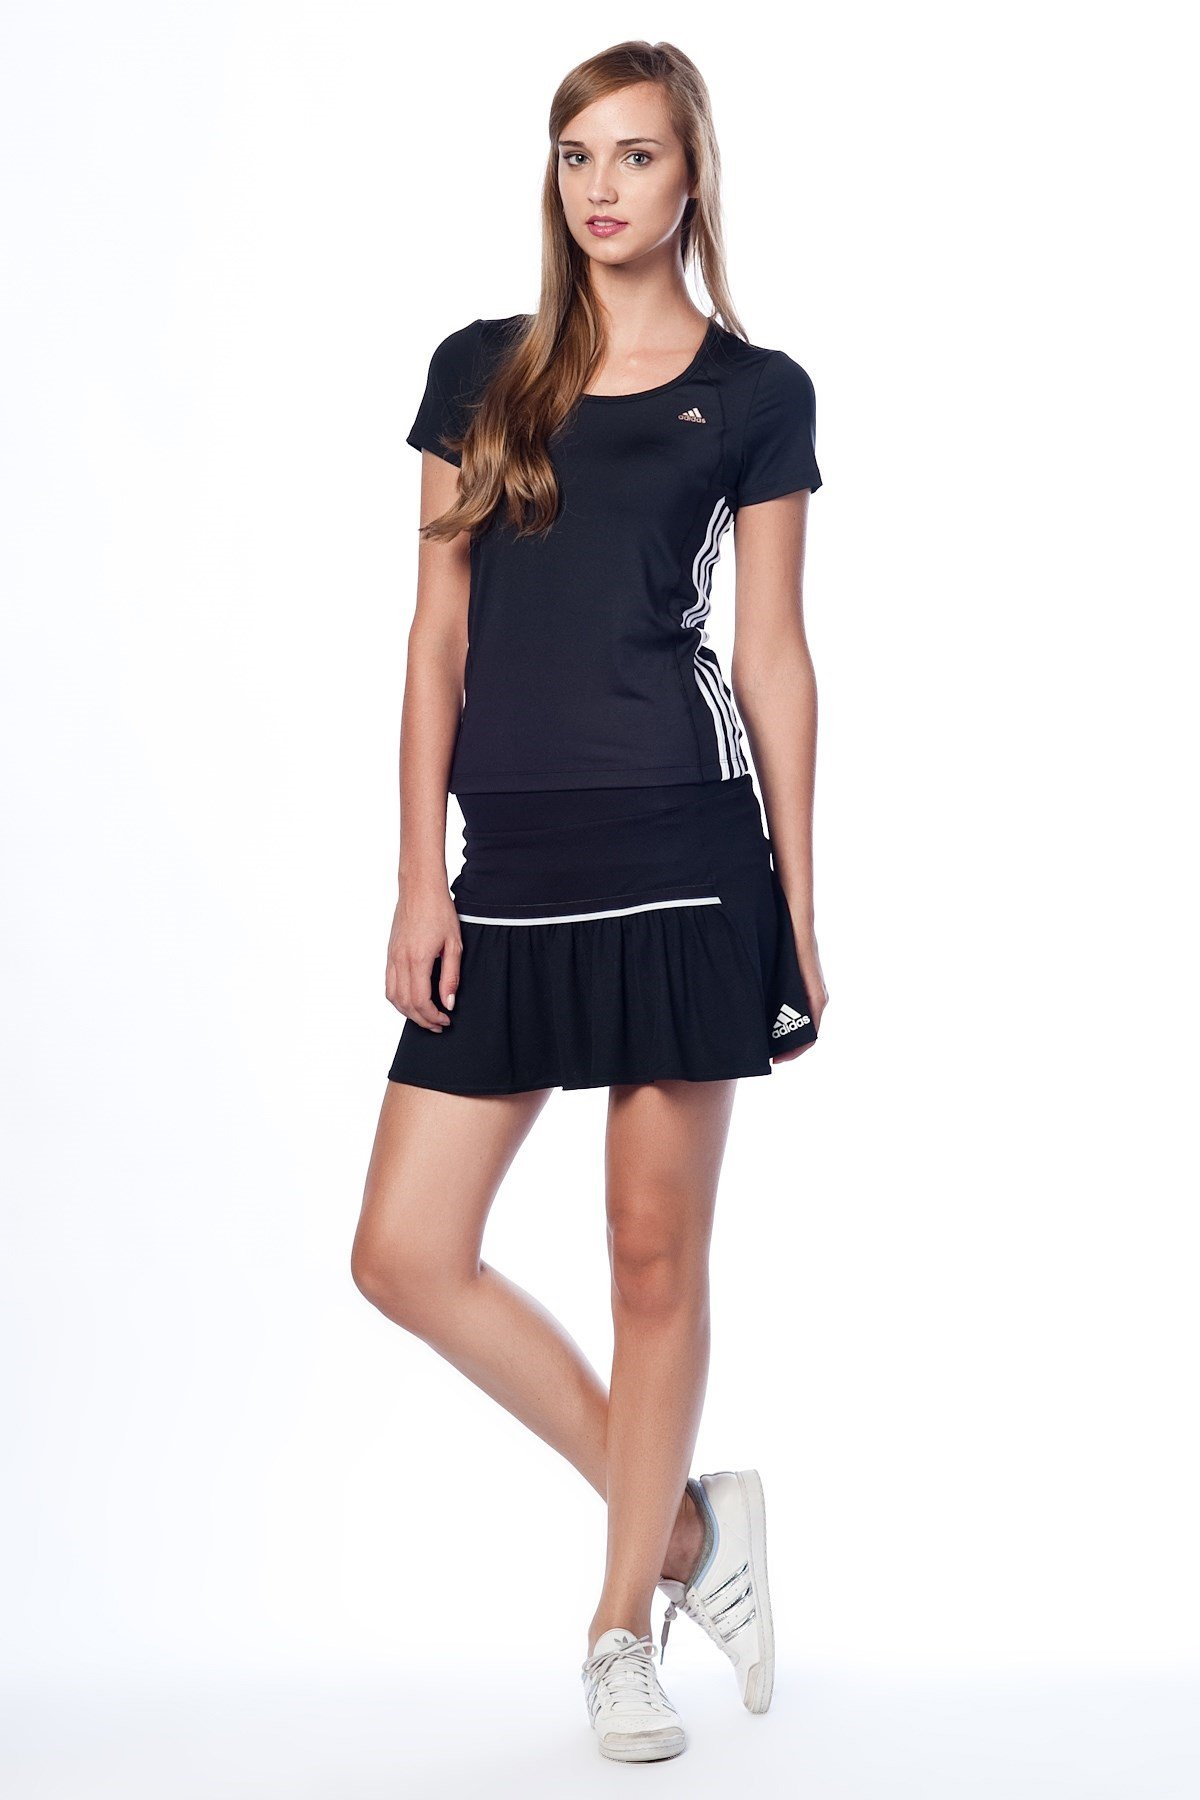 adidas Womens Sequential Core Tennis Skort Black (X-Large) Z20515